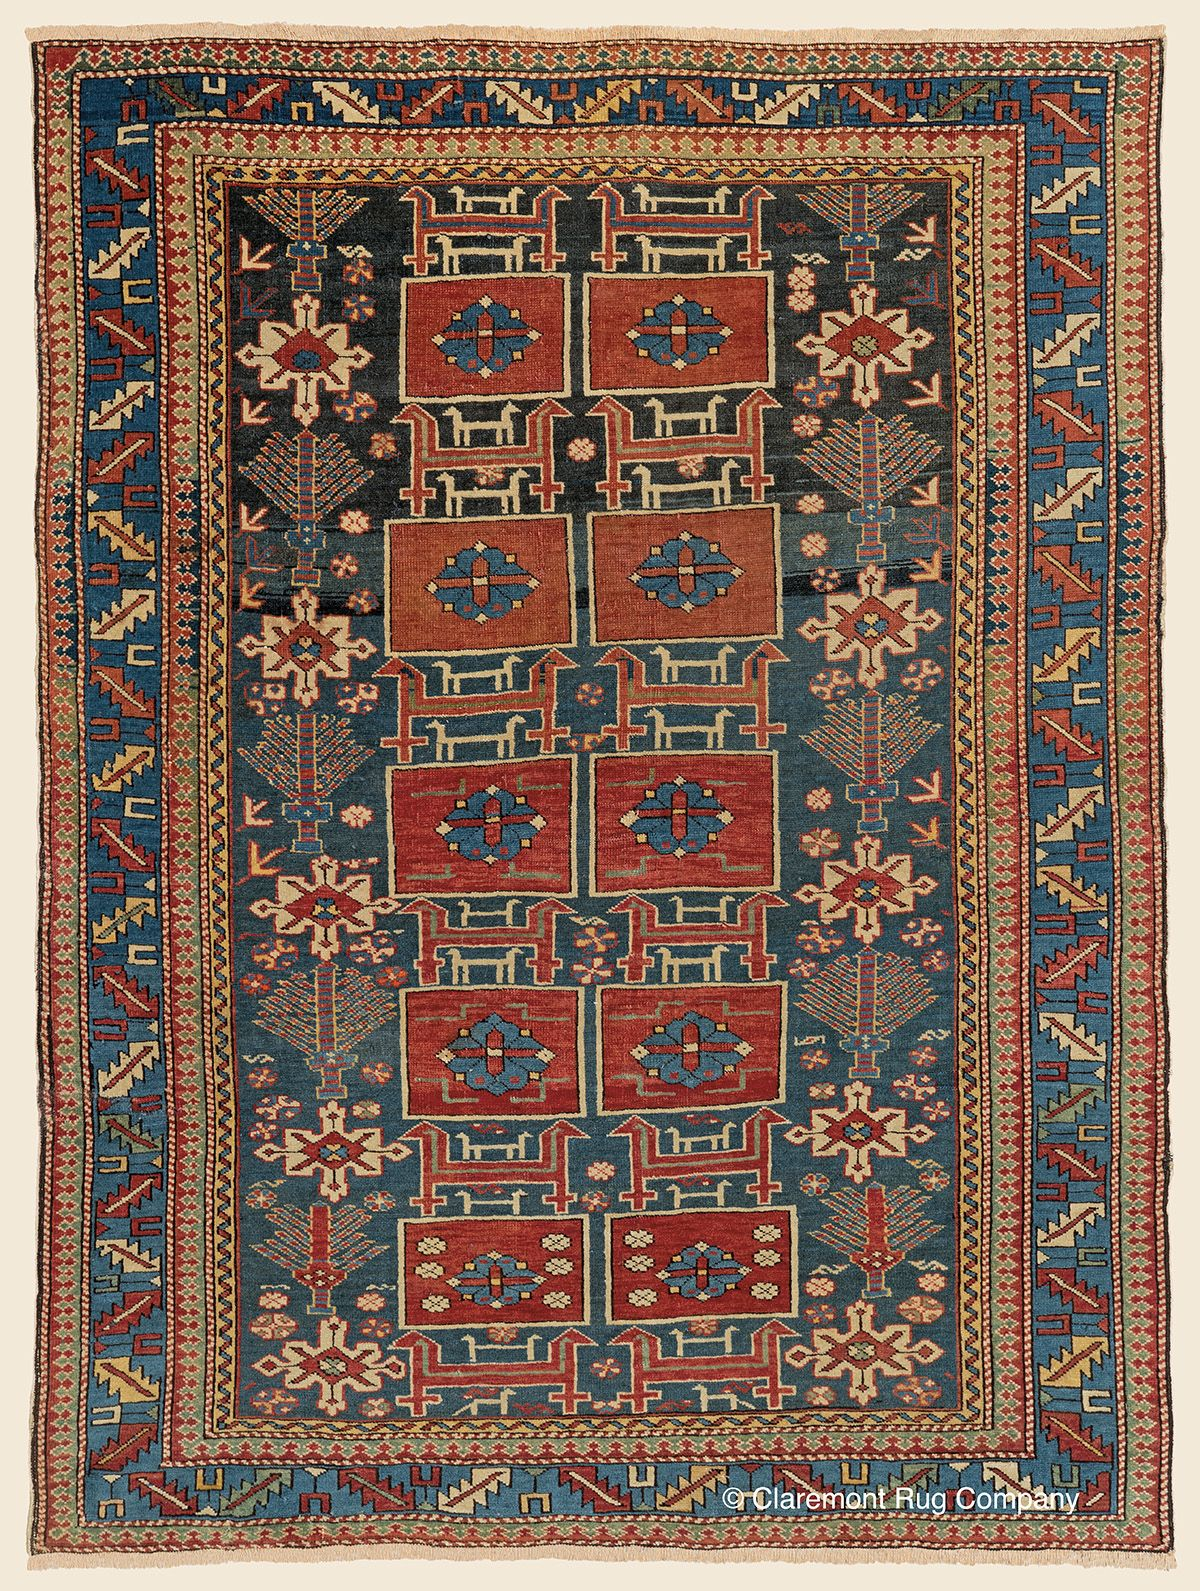 The Art And History Of Antique Caucasian Shirvan Tribal Rugs Claremont Rug Company Antique Oriental Rugs Rugs